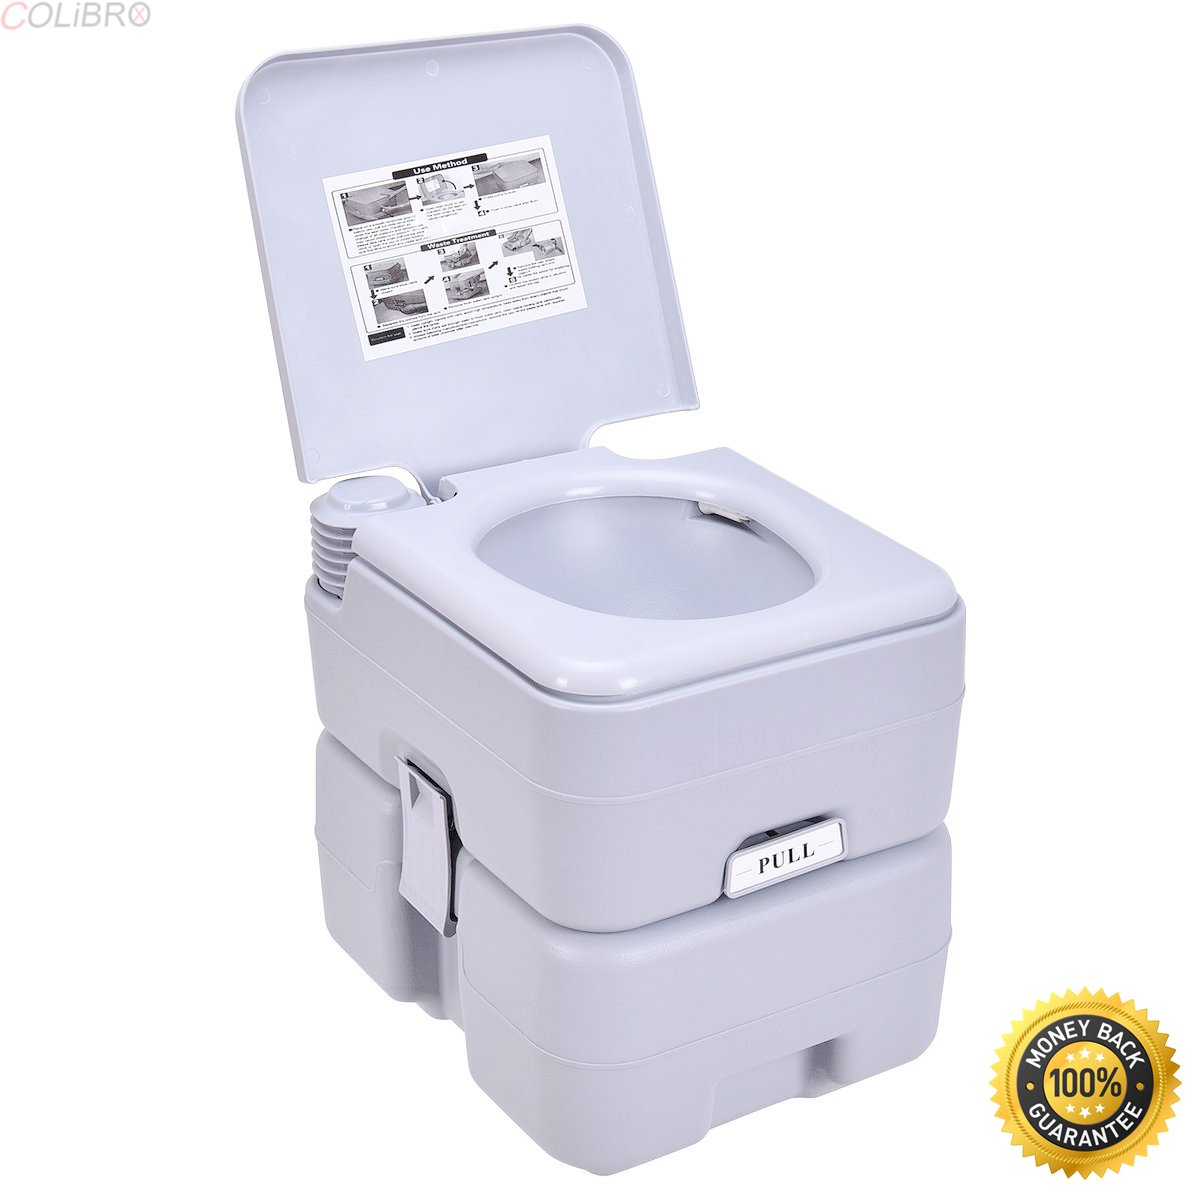 COLIBROX--5 Gallon 20L Portable Toilet Flush Travel Camping Outdoor/Indoor Potty Commode,walters portable toilets,cheap toilets,luxury portable toilet,rei portable toilets,portable toilets for home us by COLIBROX (Image #1)